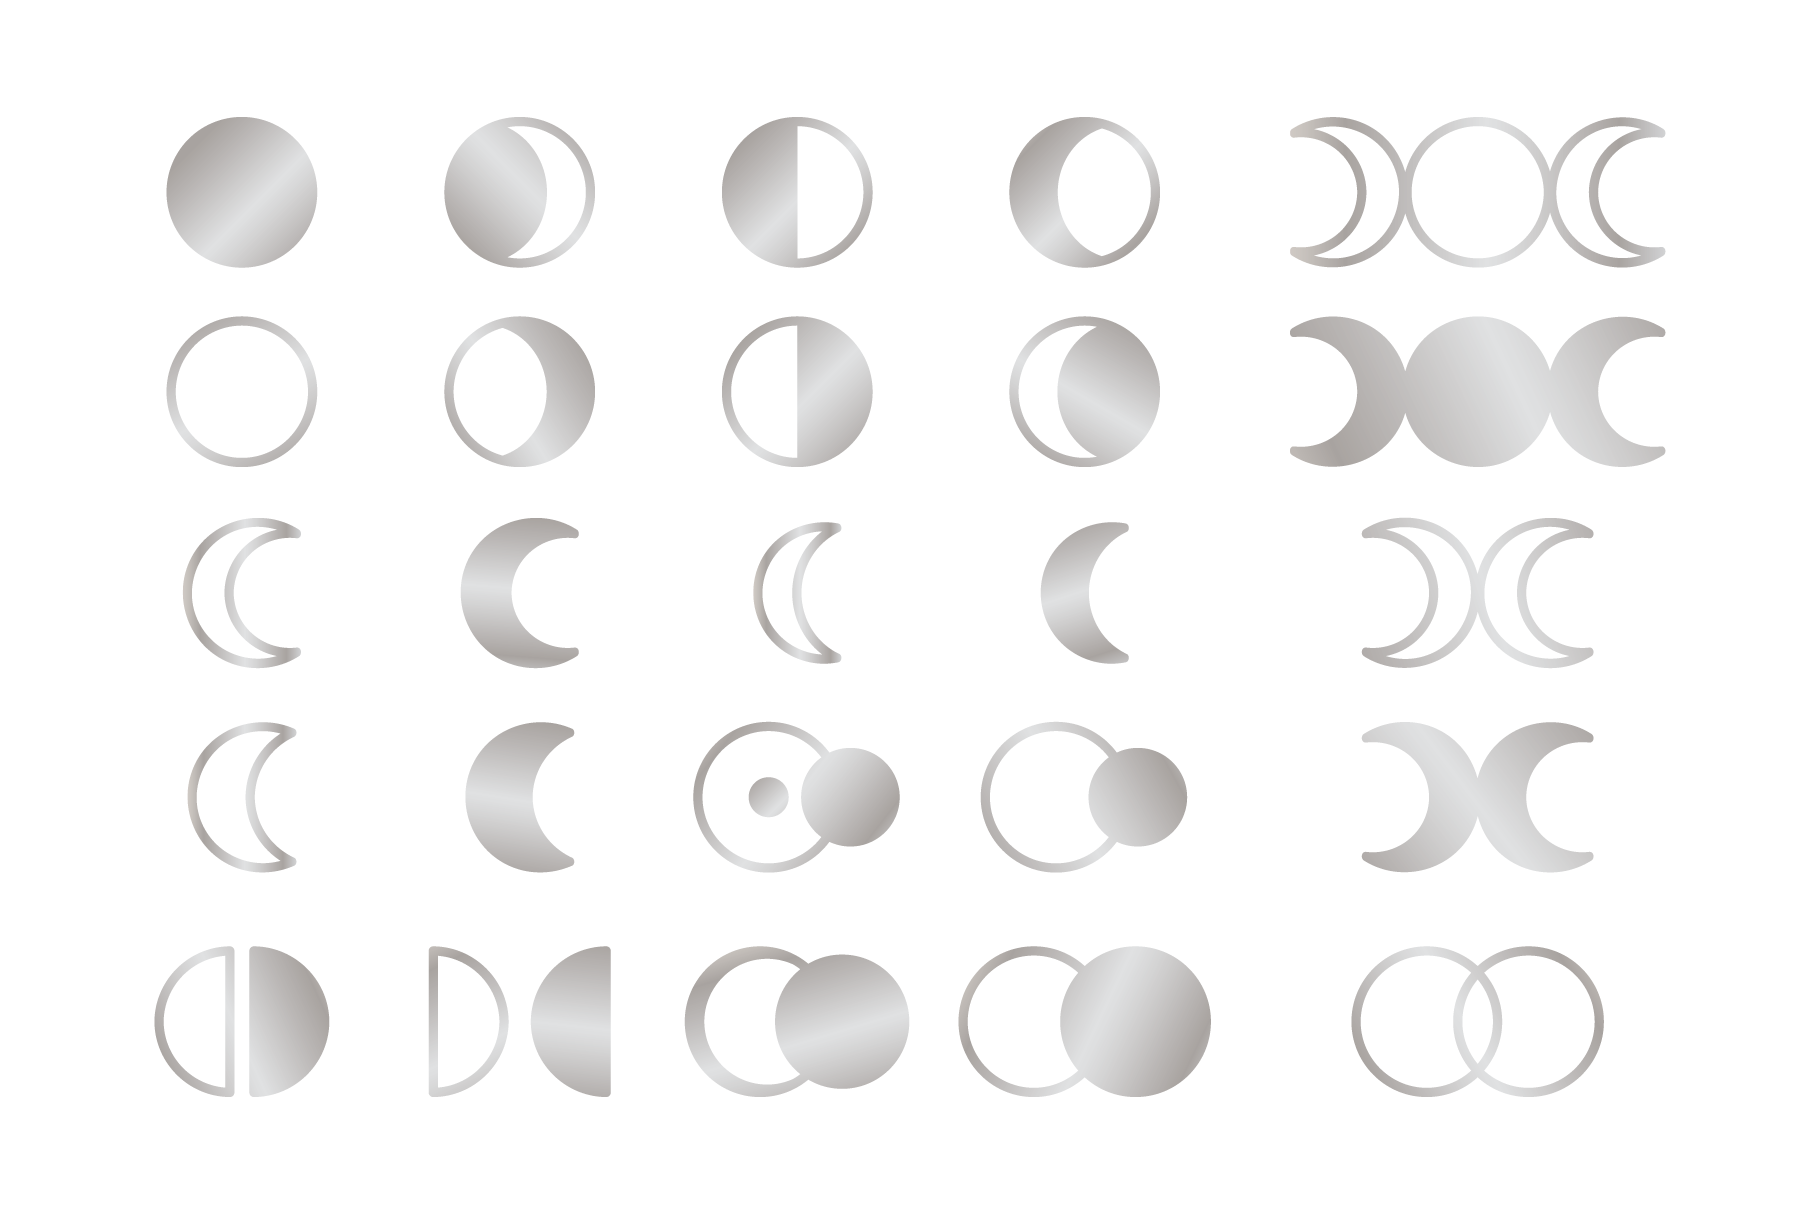 Moon Cycle Icons Clip Art Set example image 6